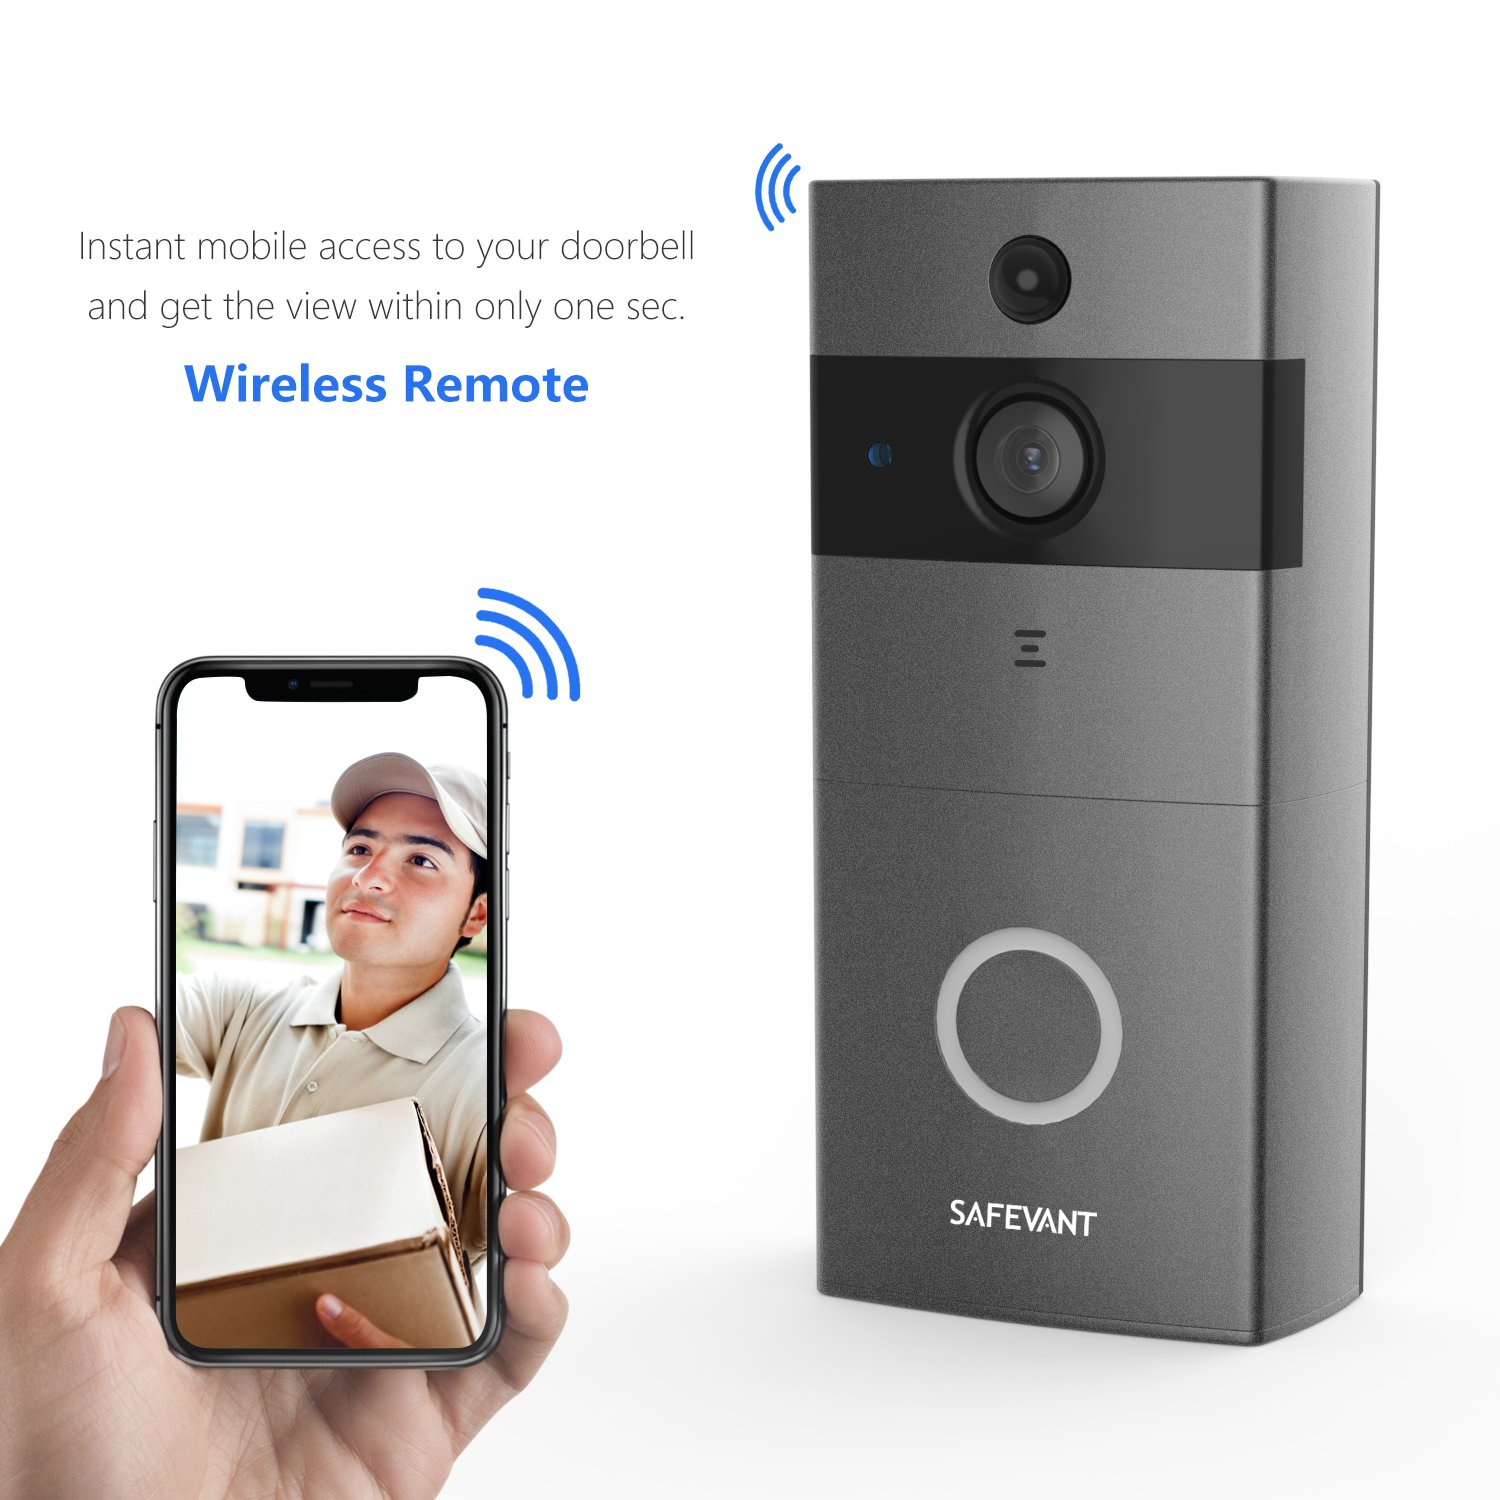 Video Doorbell, Safevant Wi-Fi Doorbell Camera 720P HD Home Security Camera with Two-Way Talk & Video,Infrared Night Vision,PIR Motion Detection Wireless Doorbell for iOS and Android Smart Phone